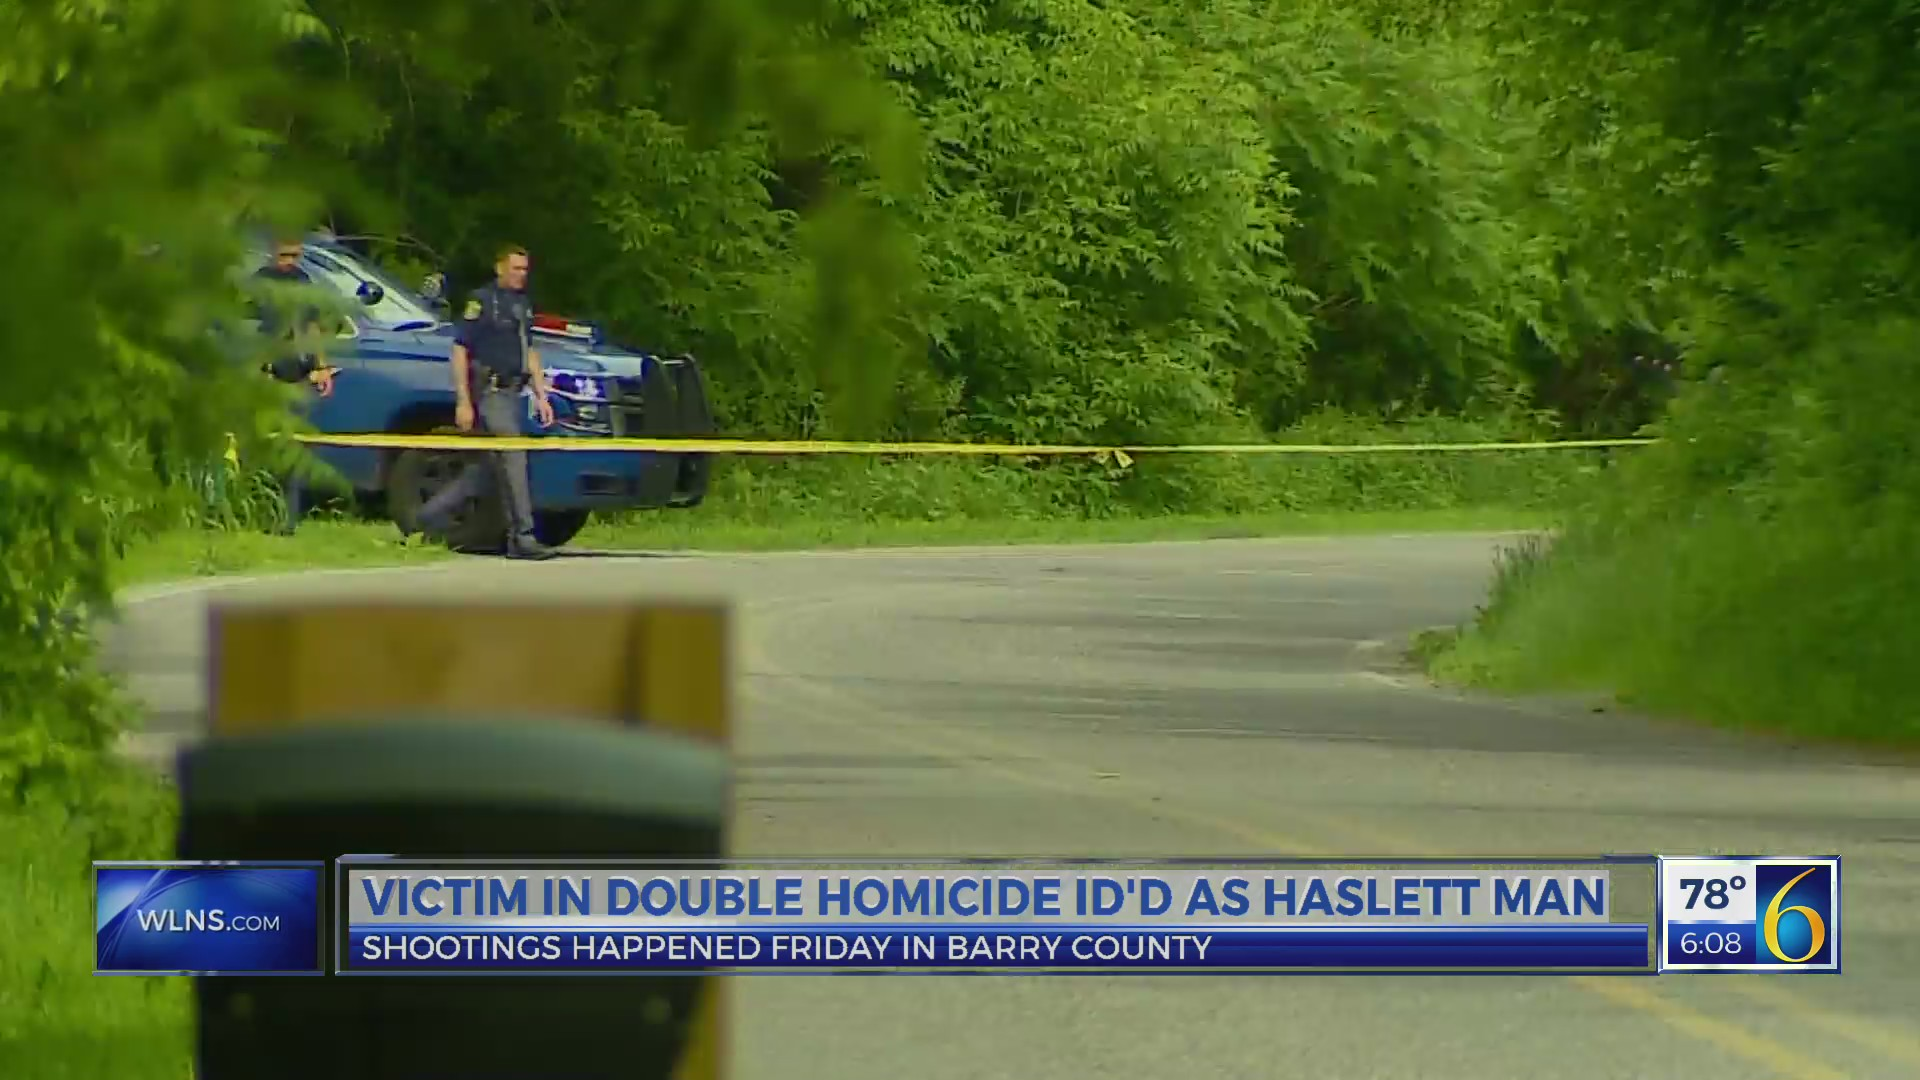 Haslett man ID'd as victim in Barry Co  double homicide